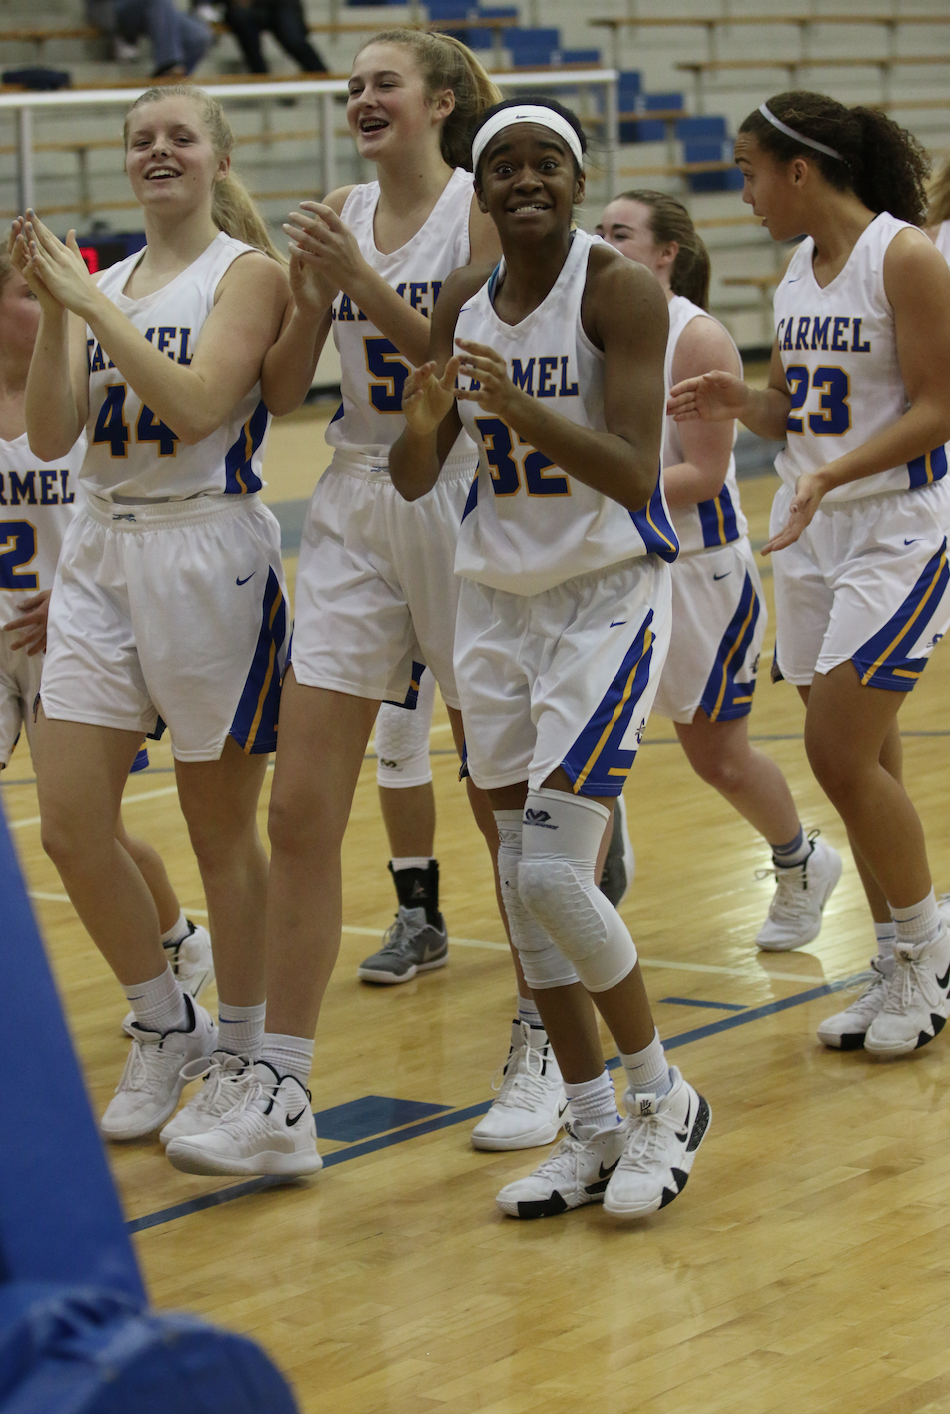 Greyhounds forward and senior Reagan Hune celebrates with her team after a win. Hune is averaging 11.5 points per game.